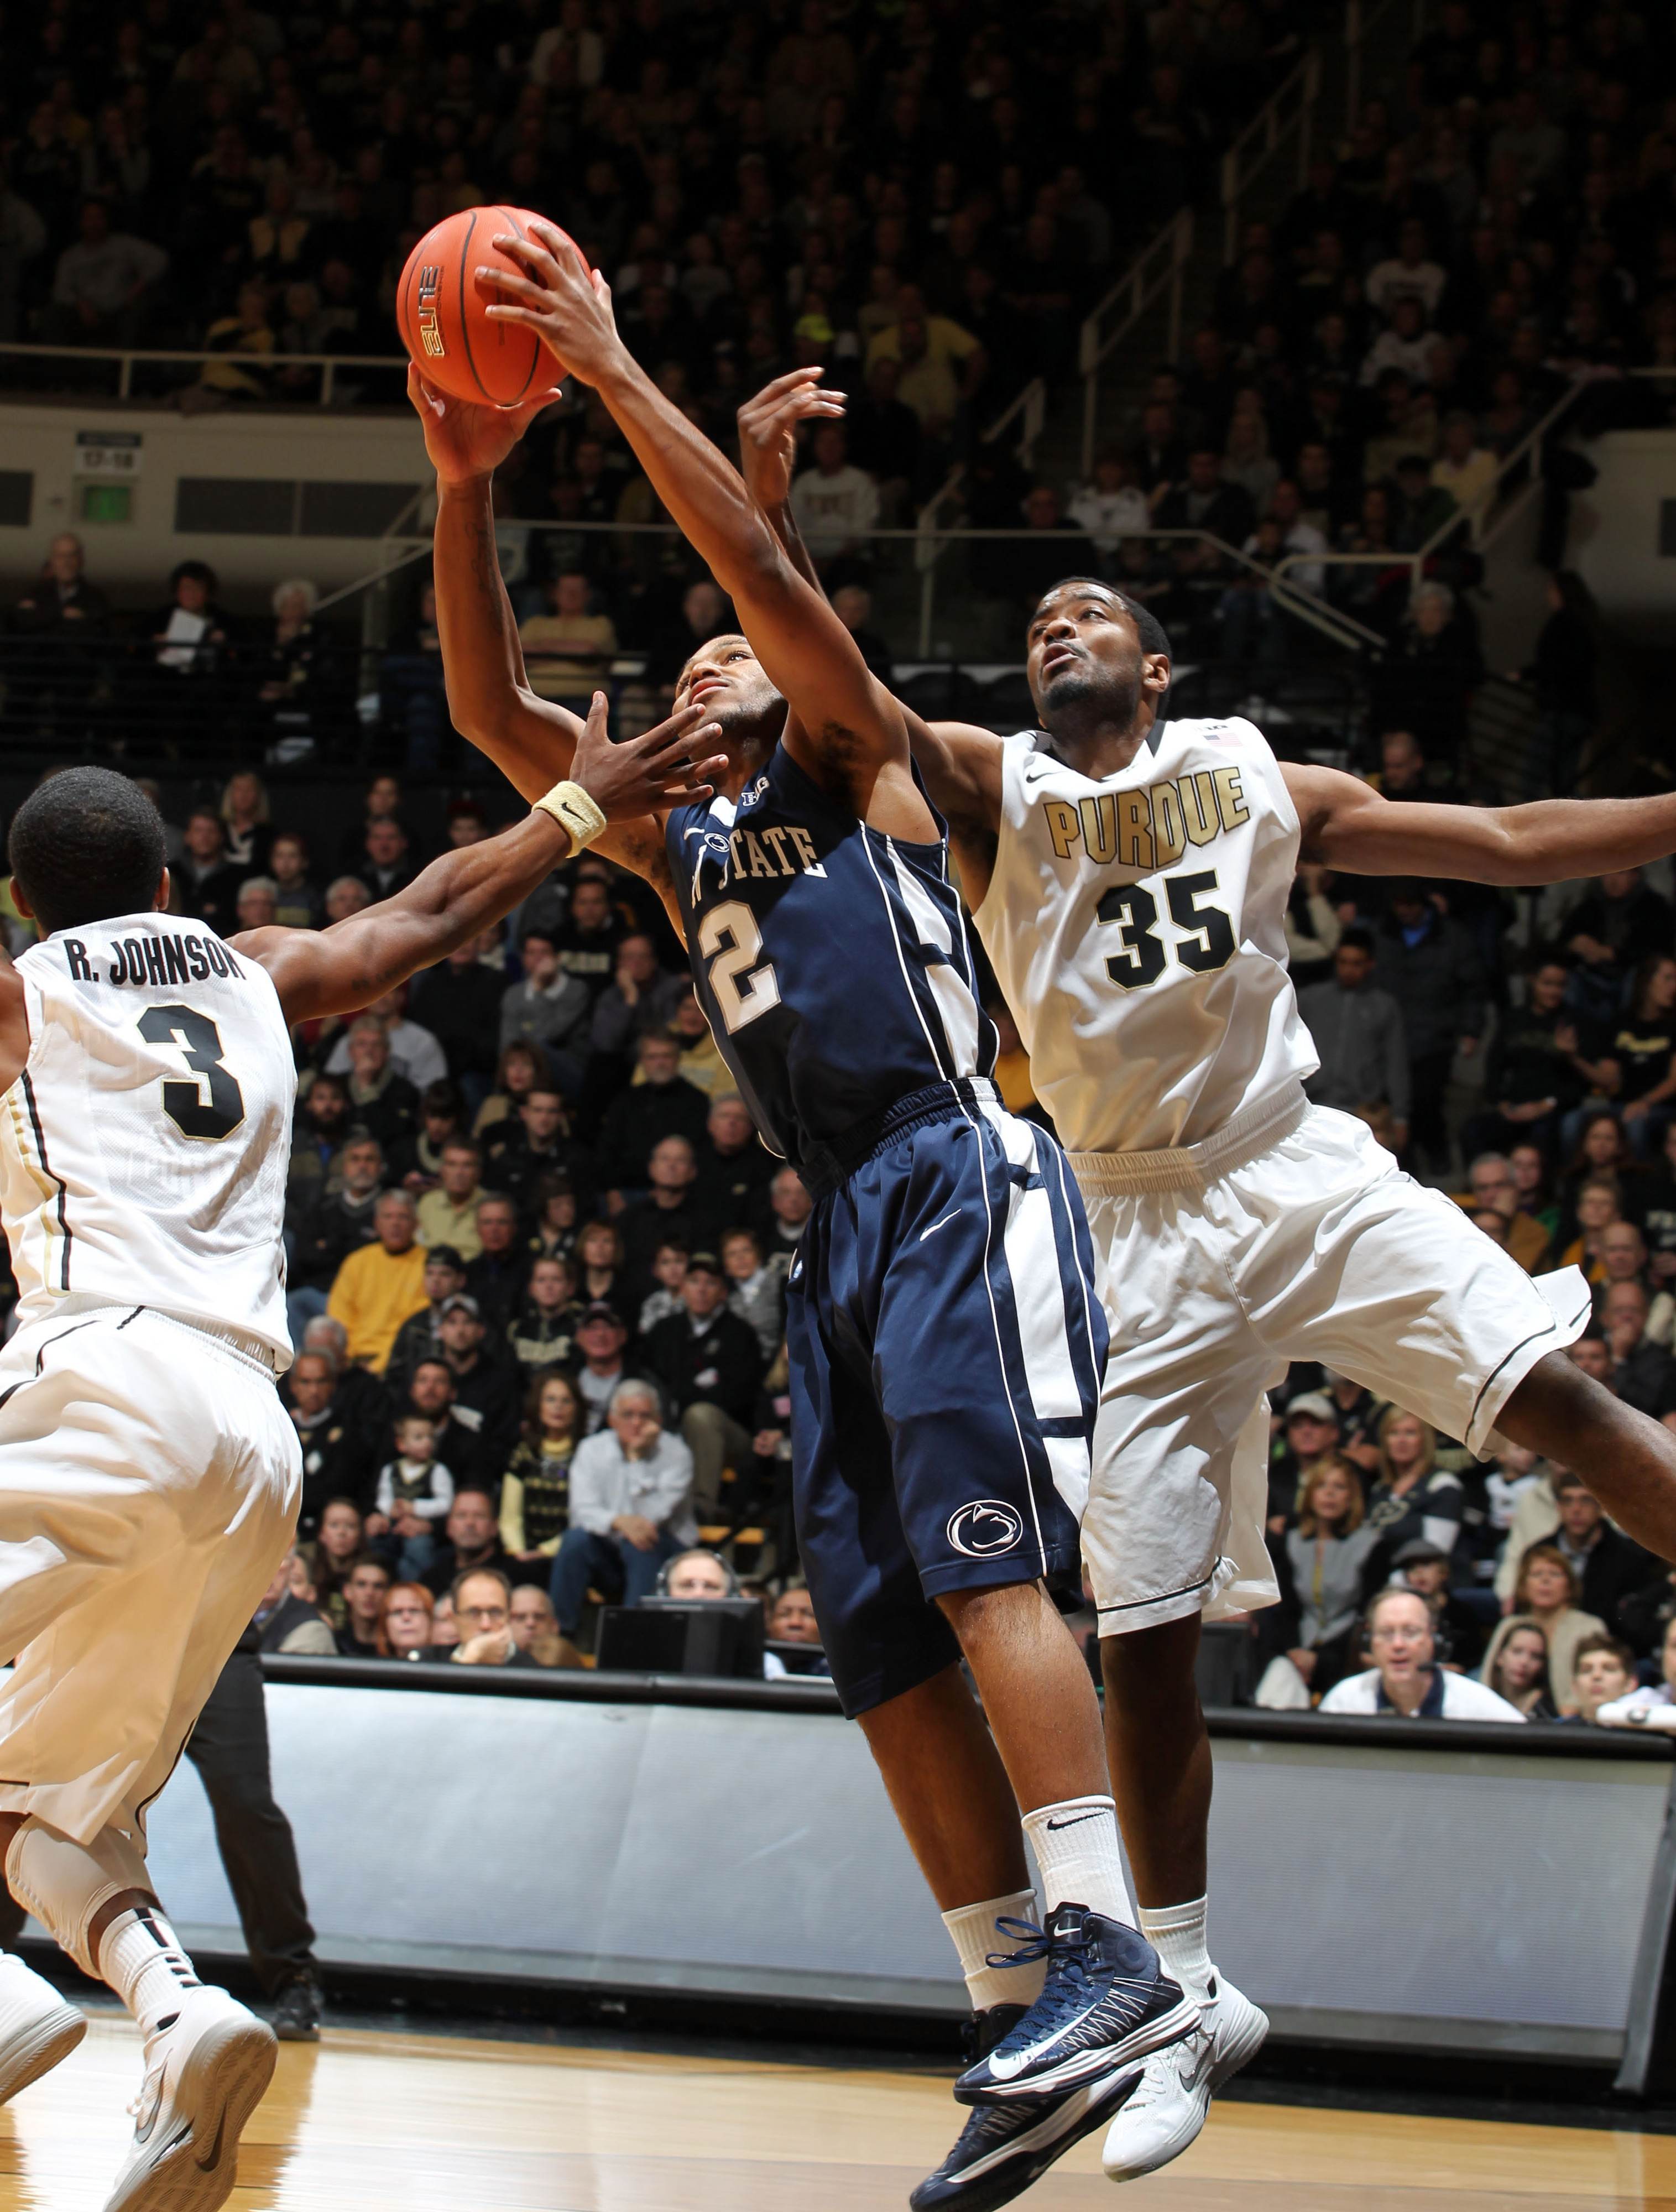 Losing to Penn State in basketball is totally something a non-existent school would do.